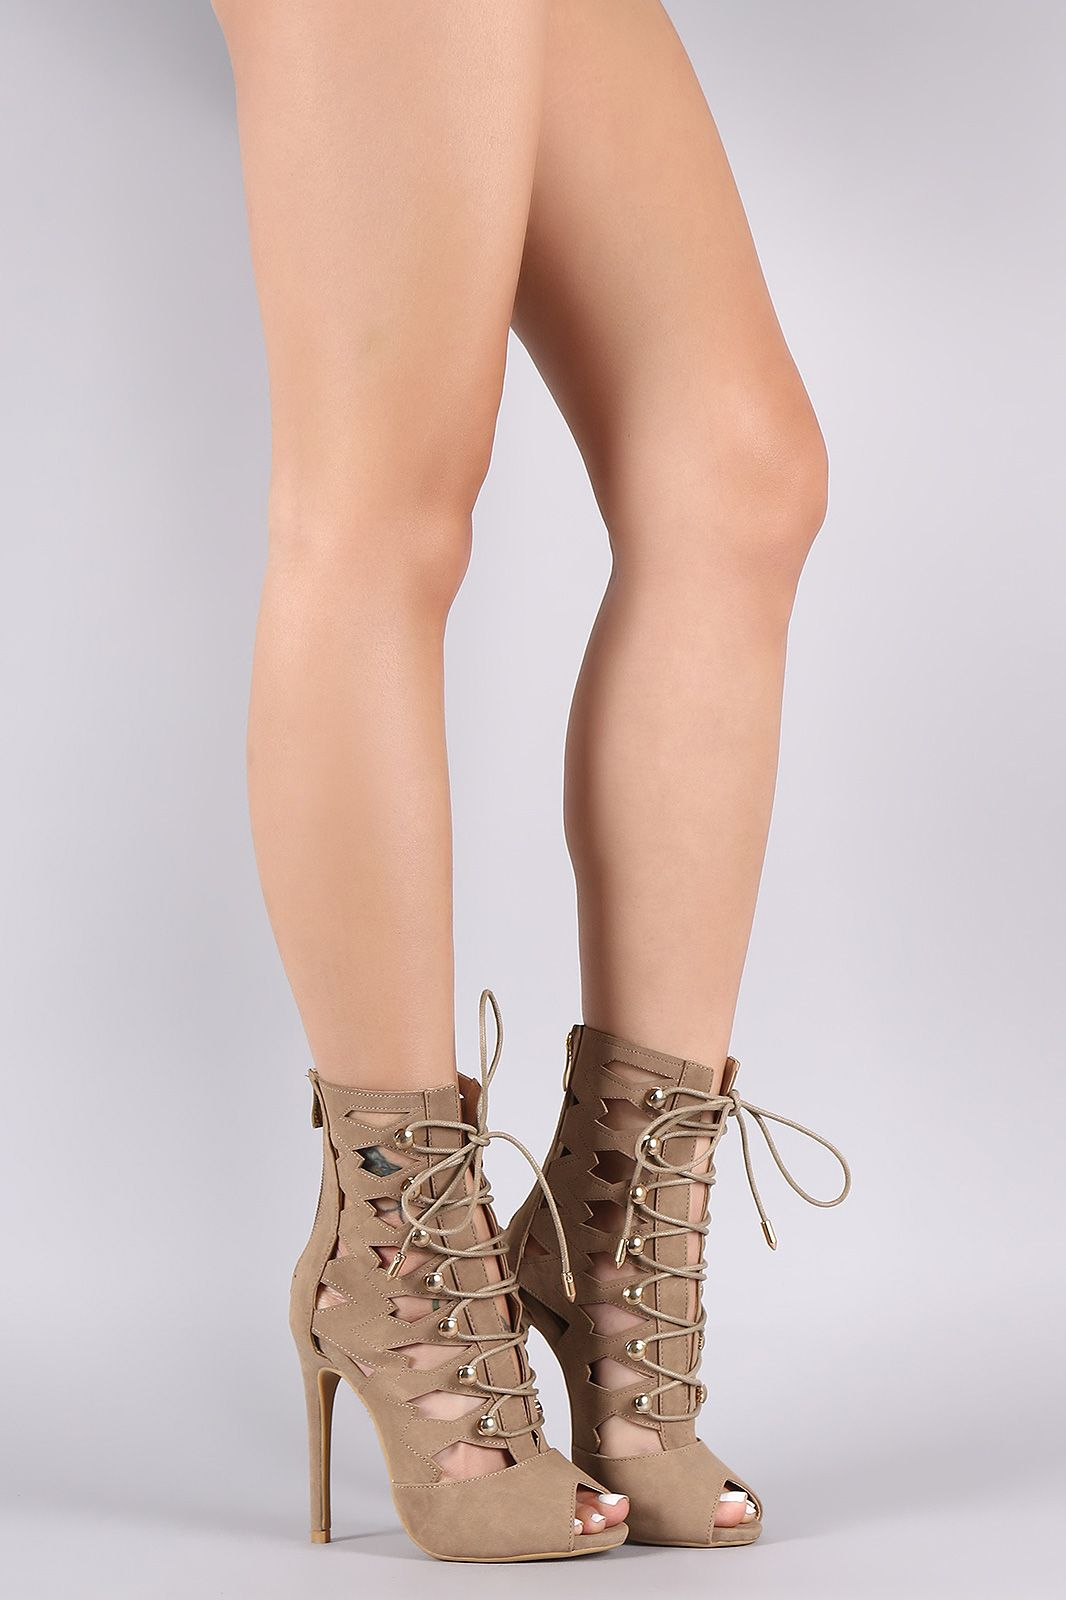 d8daced6652 Cutout Lace-Up Stiletto Booties